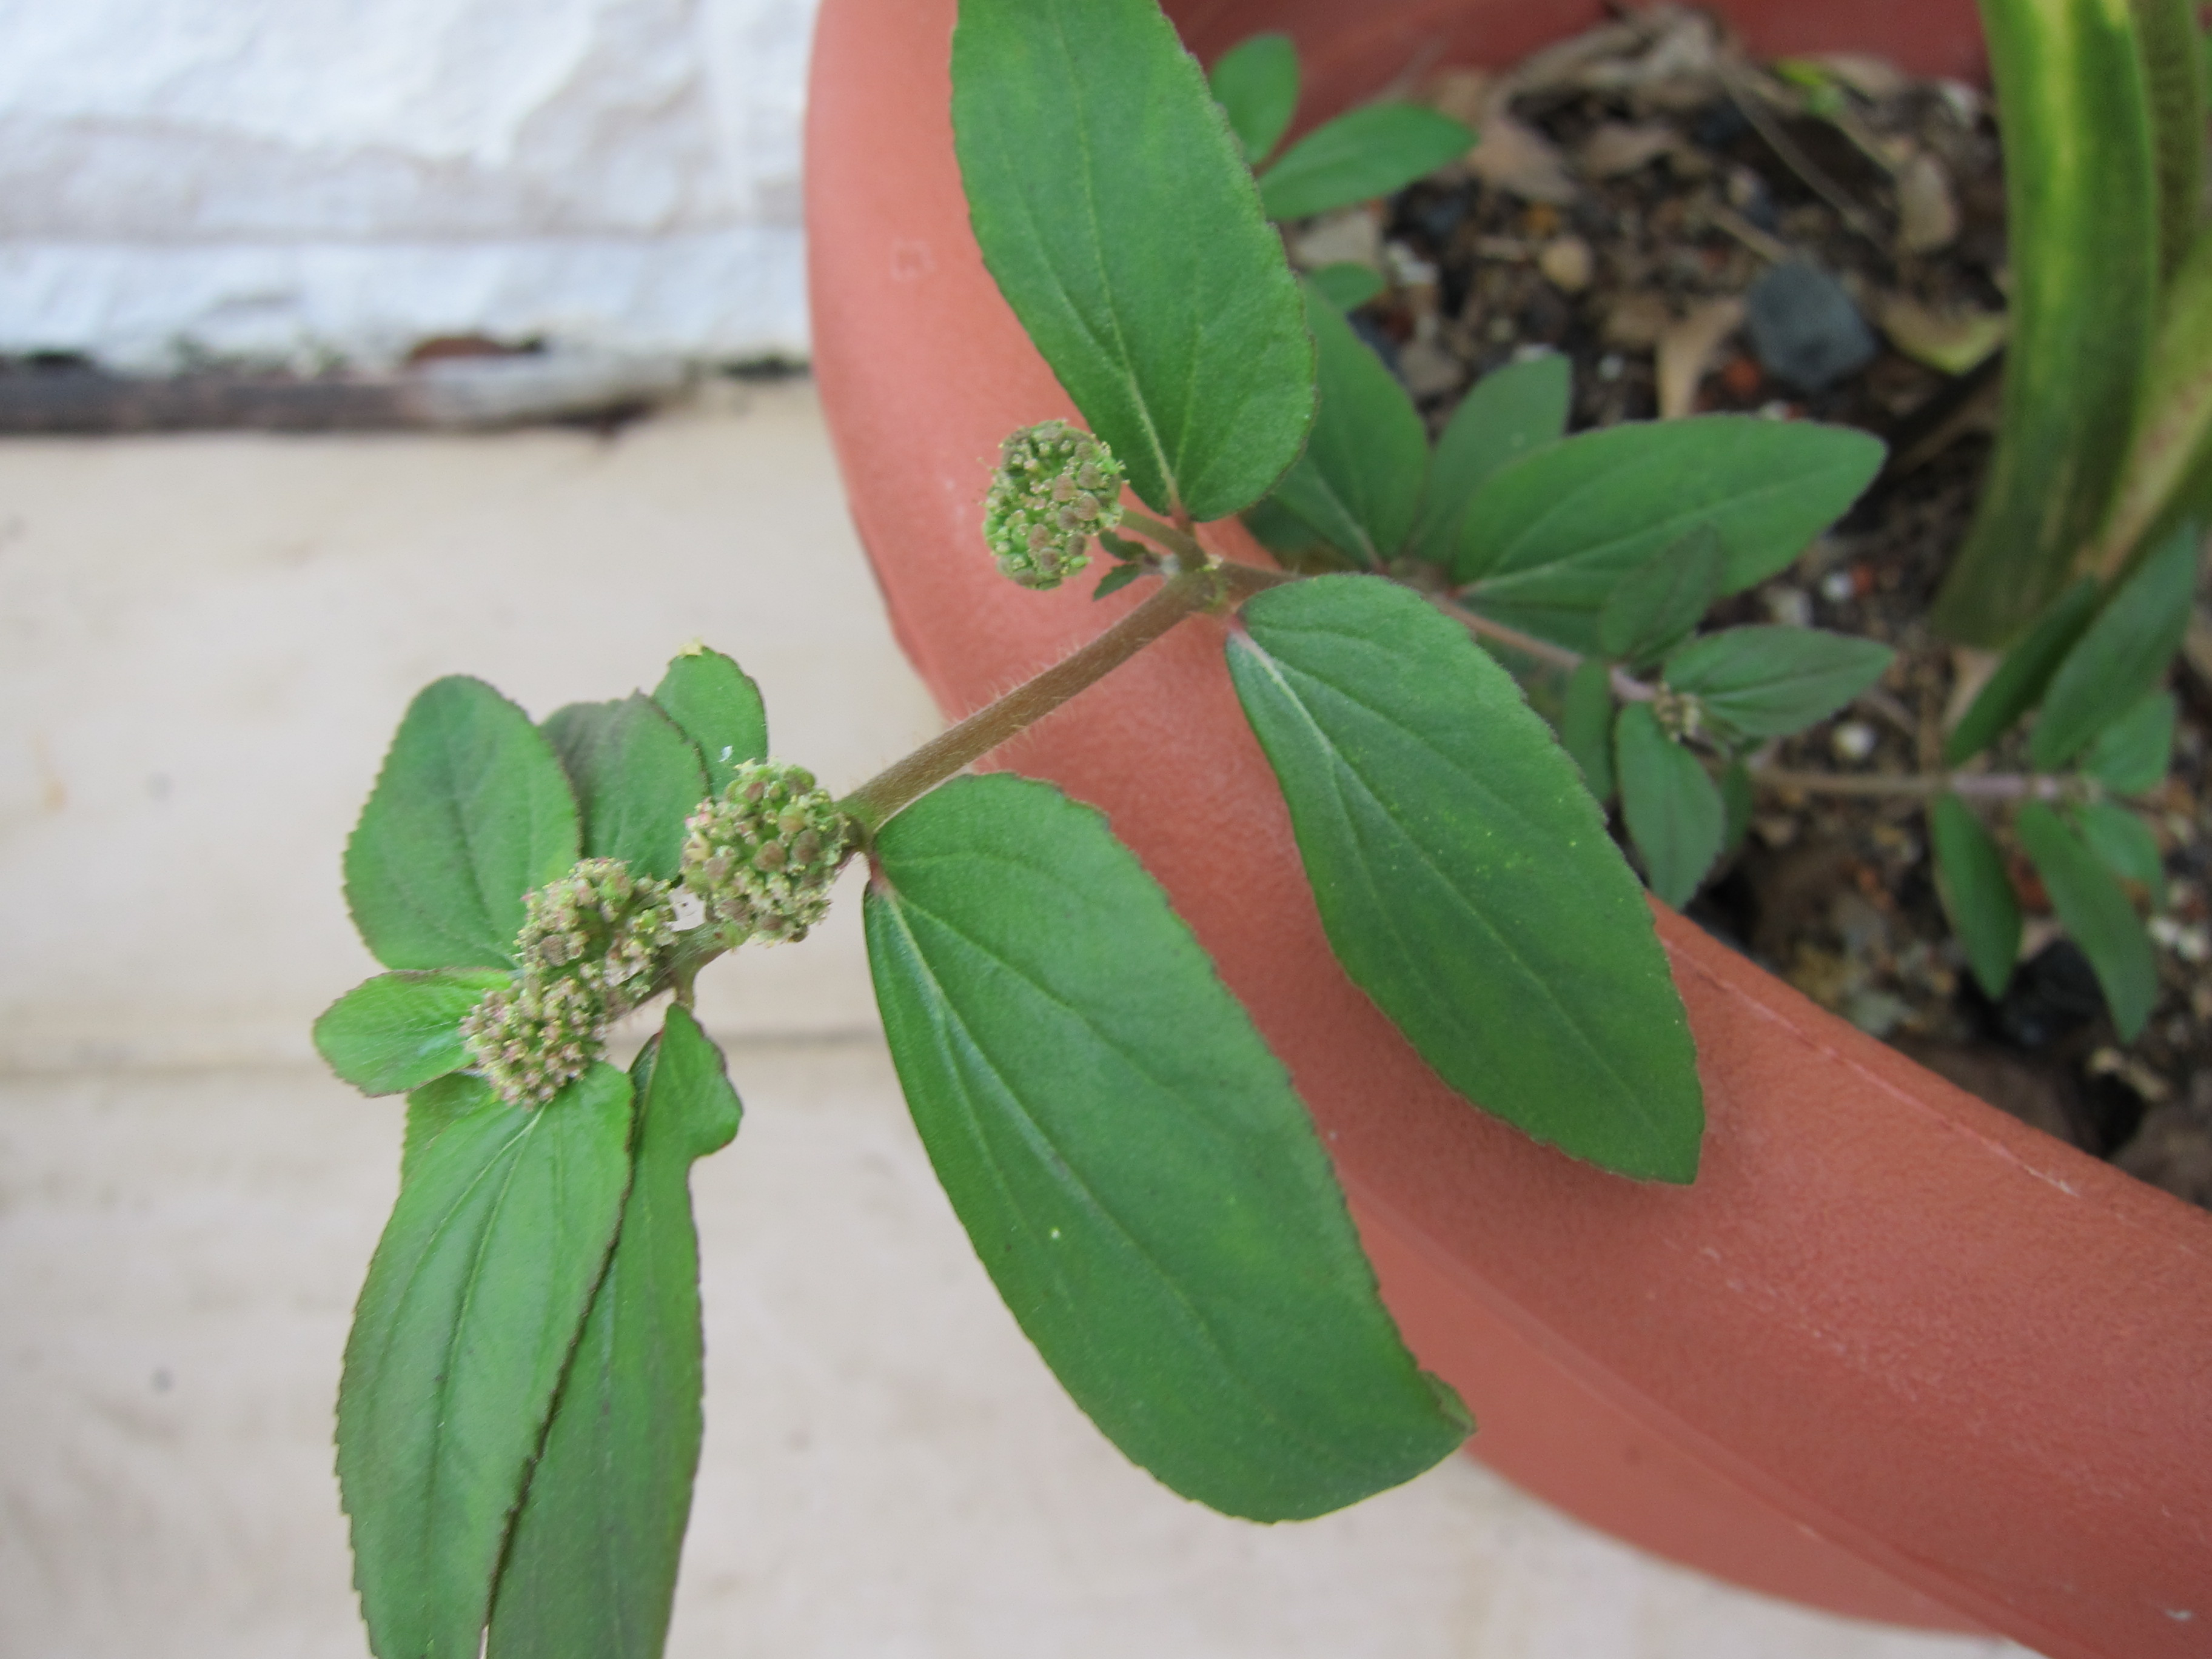 What Is A Weed Euphorbia Hirta Asthma Weed Pot Gardening